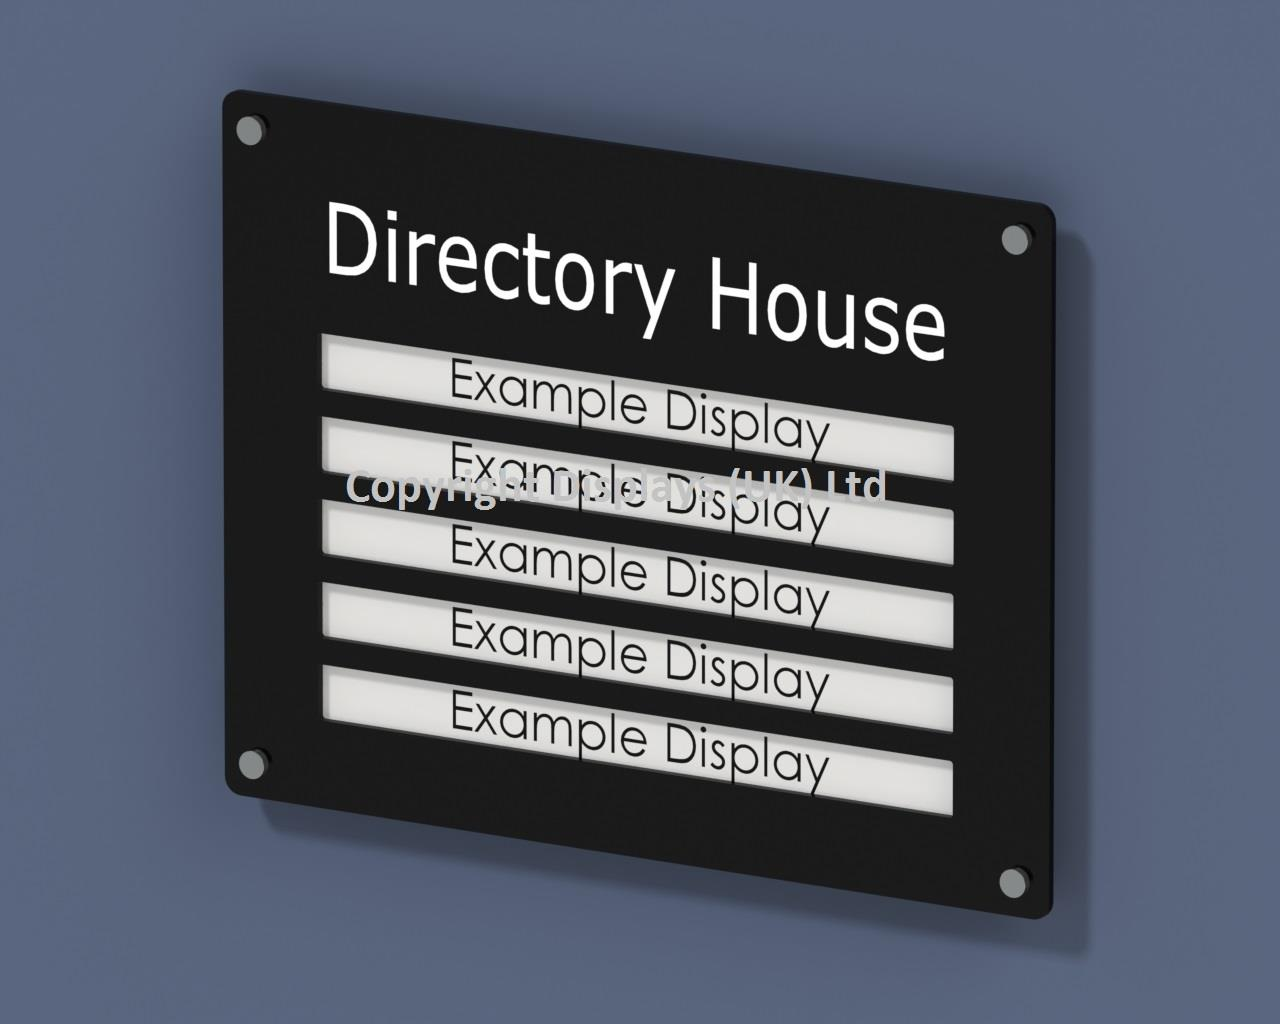 Acrylic Building / Office Directory Sign - 5 Office